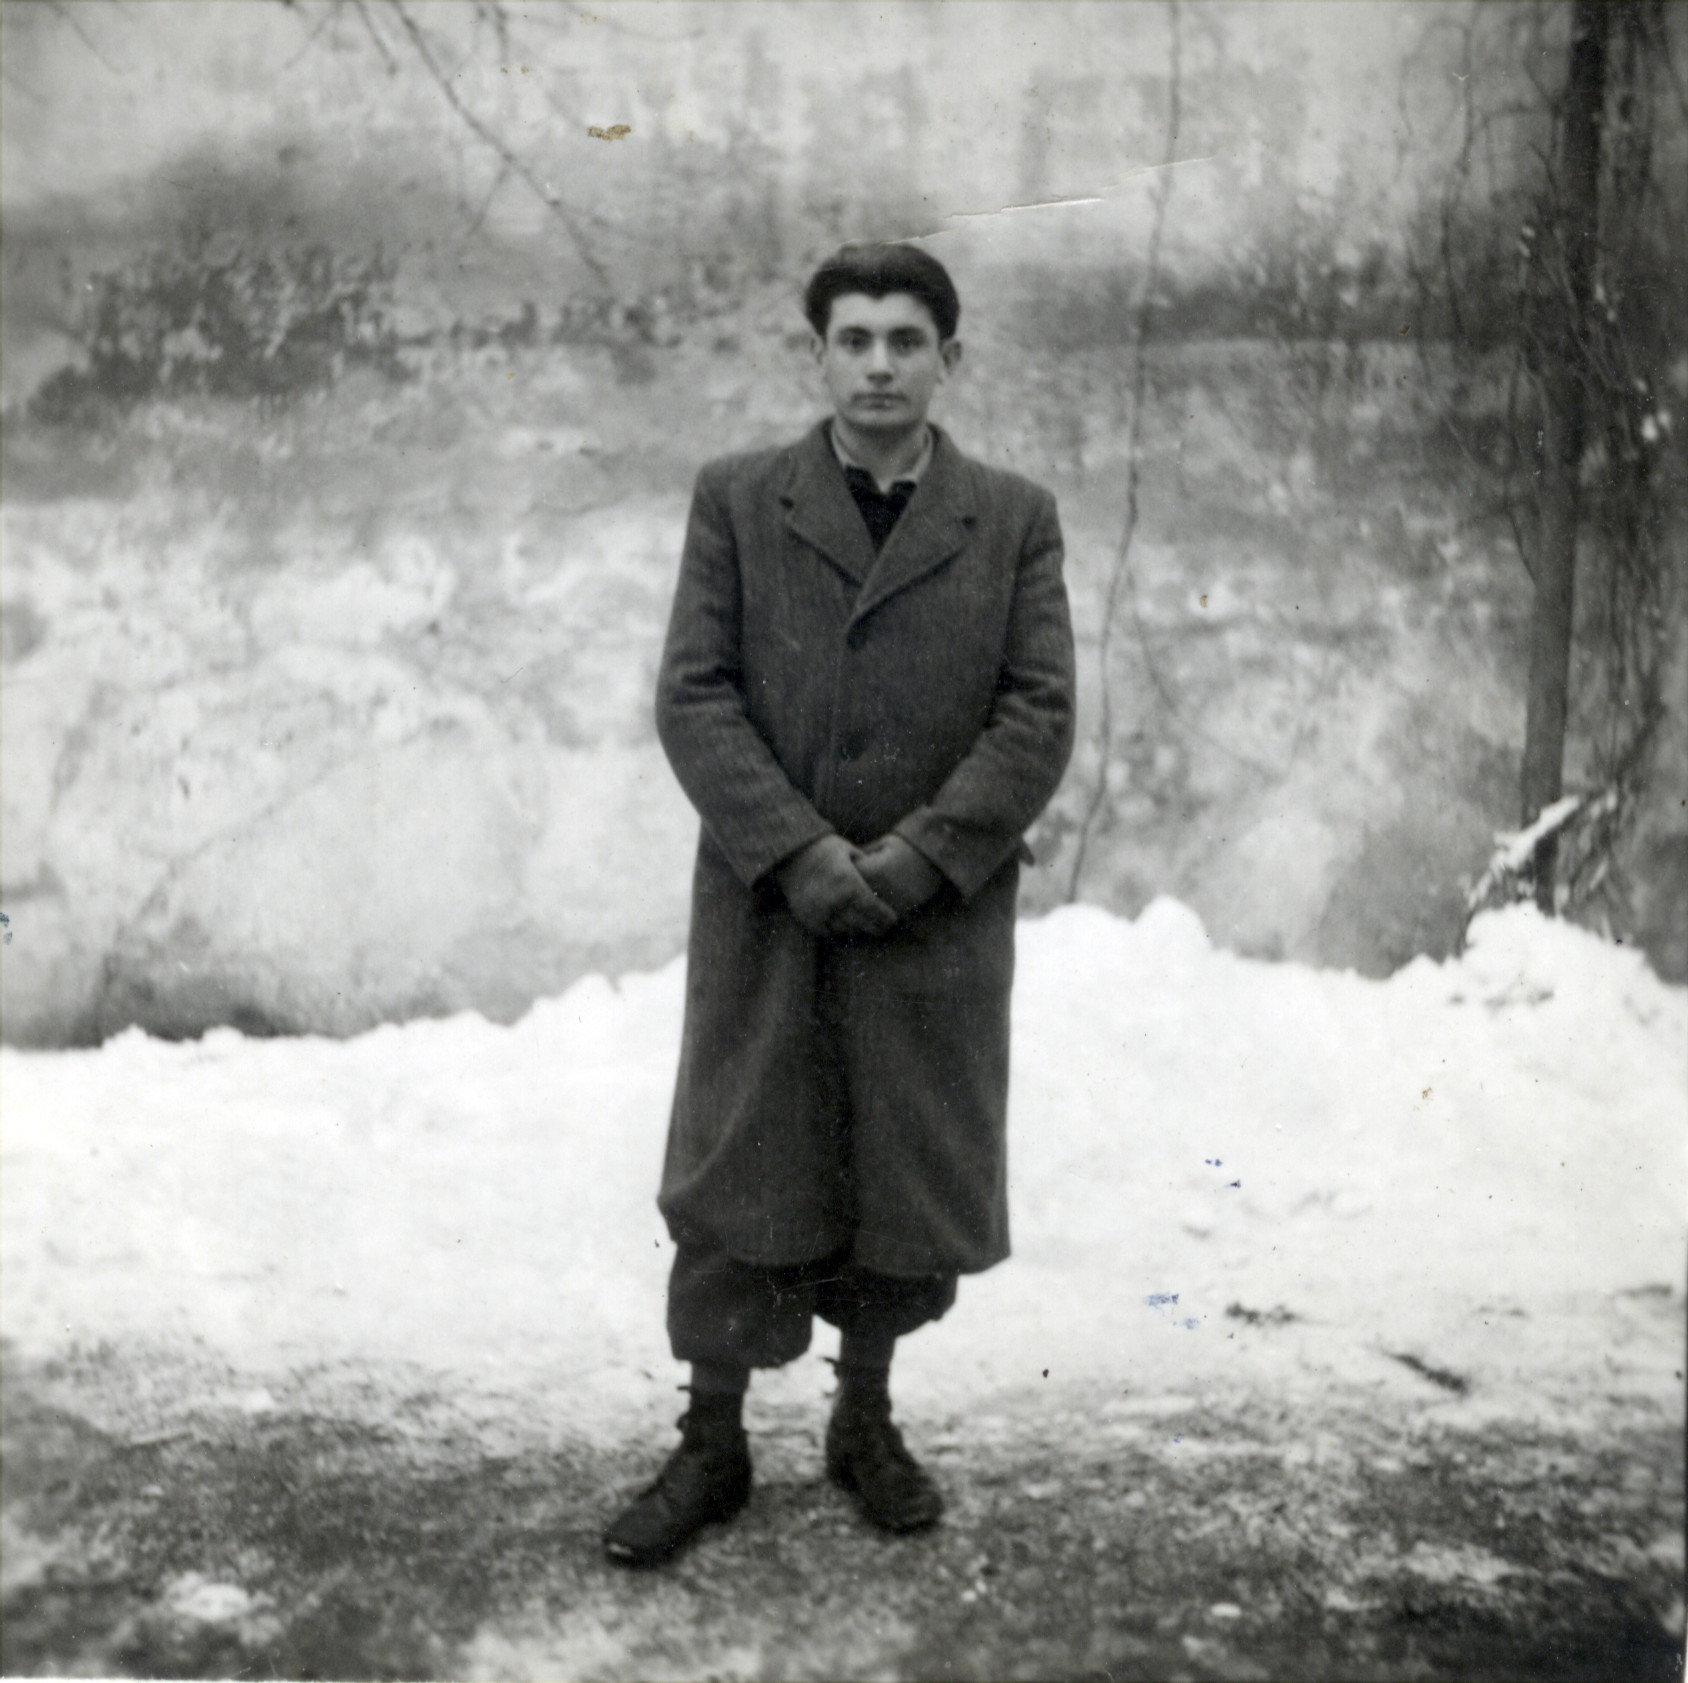 Joseph Fruchter stands in the snow.